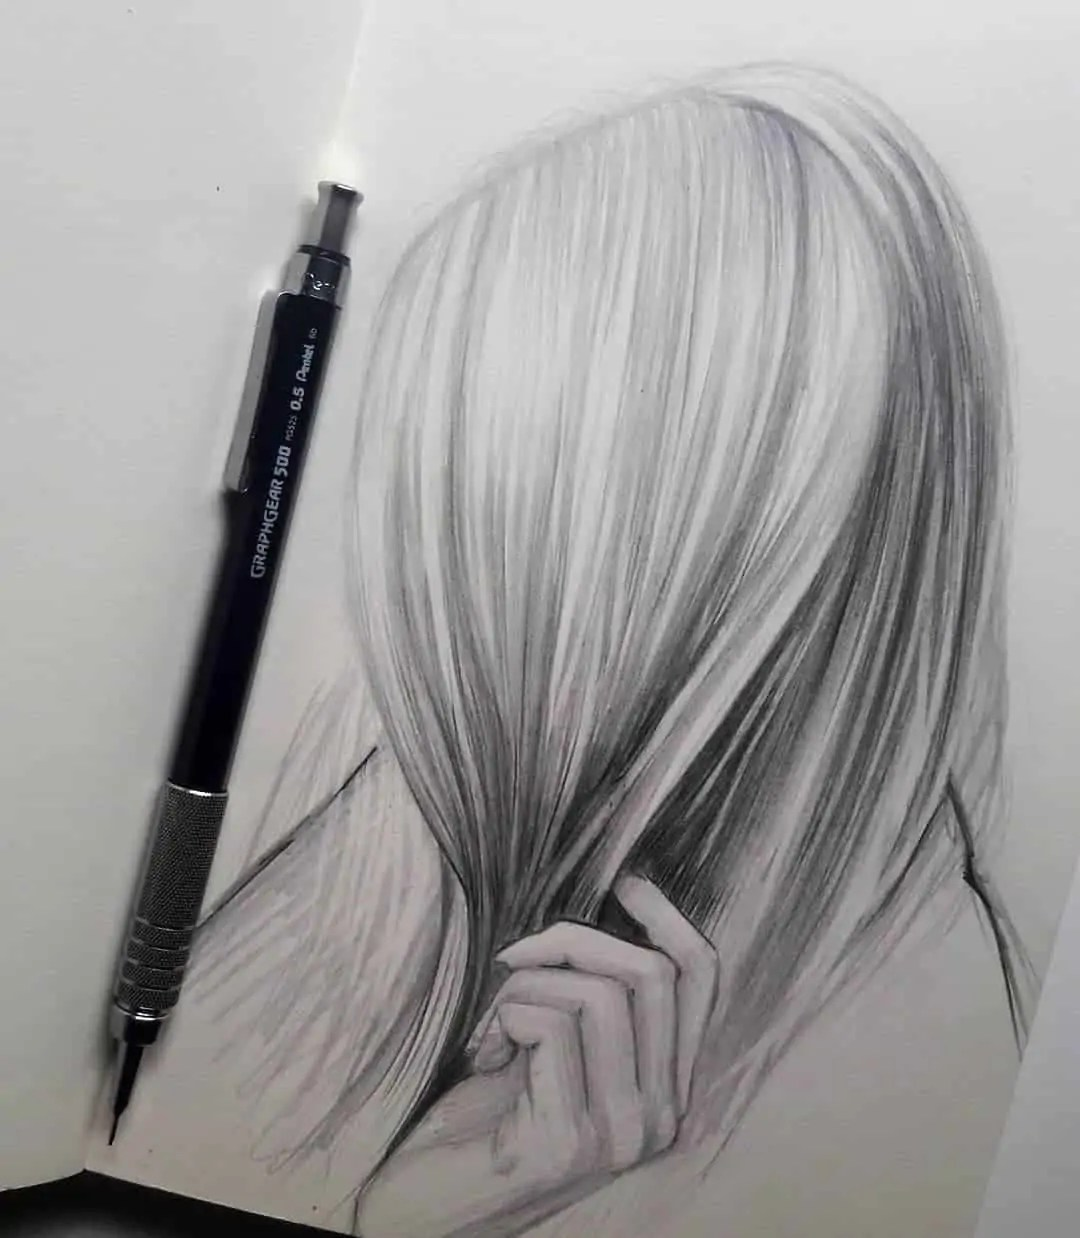 100+ Stunning Realistic Portrait Drawings 251